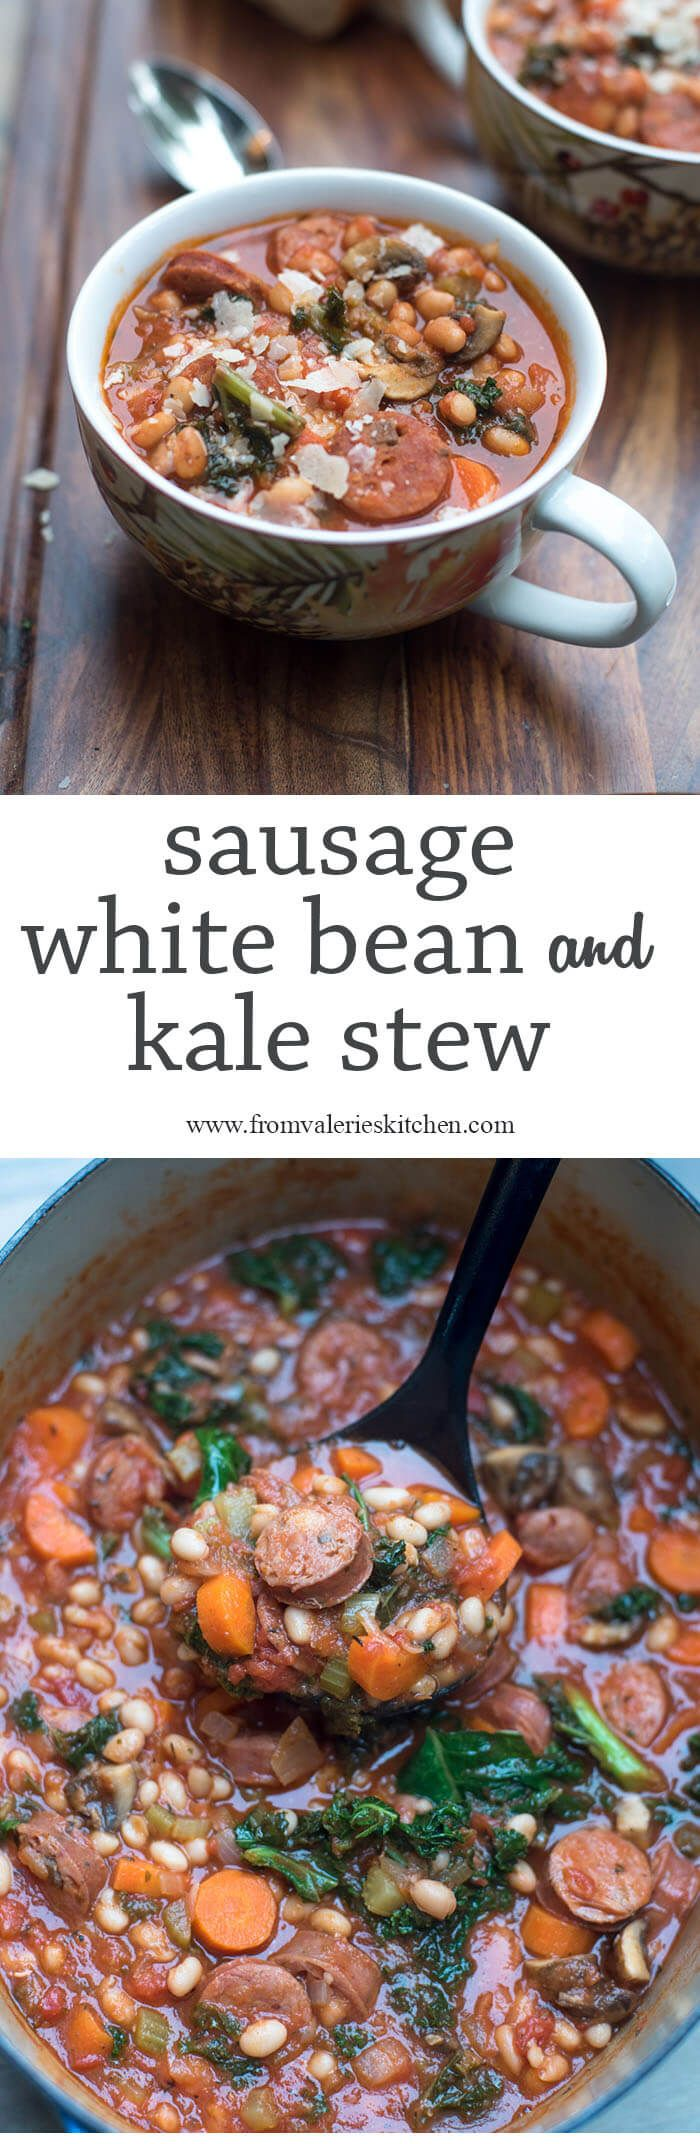 ... rustic, comforting Sausage White Bean and Kale Stew is just the